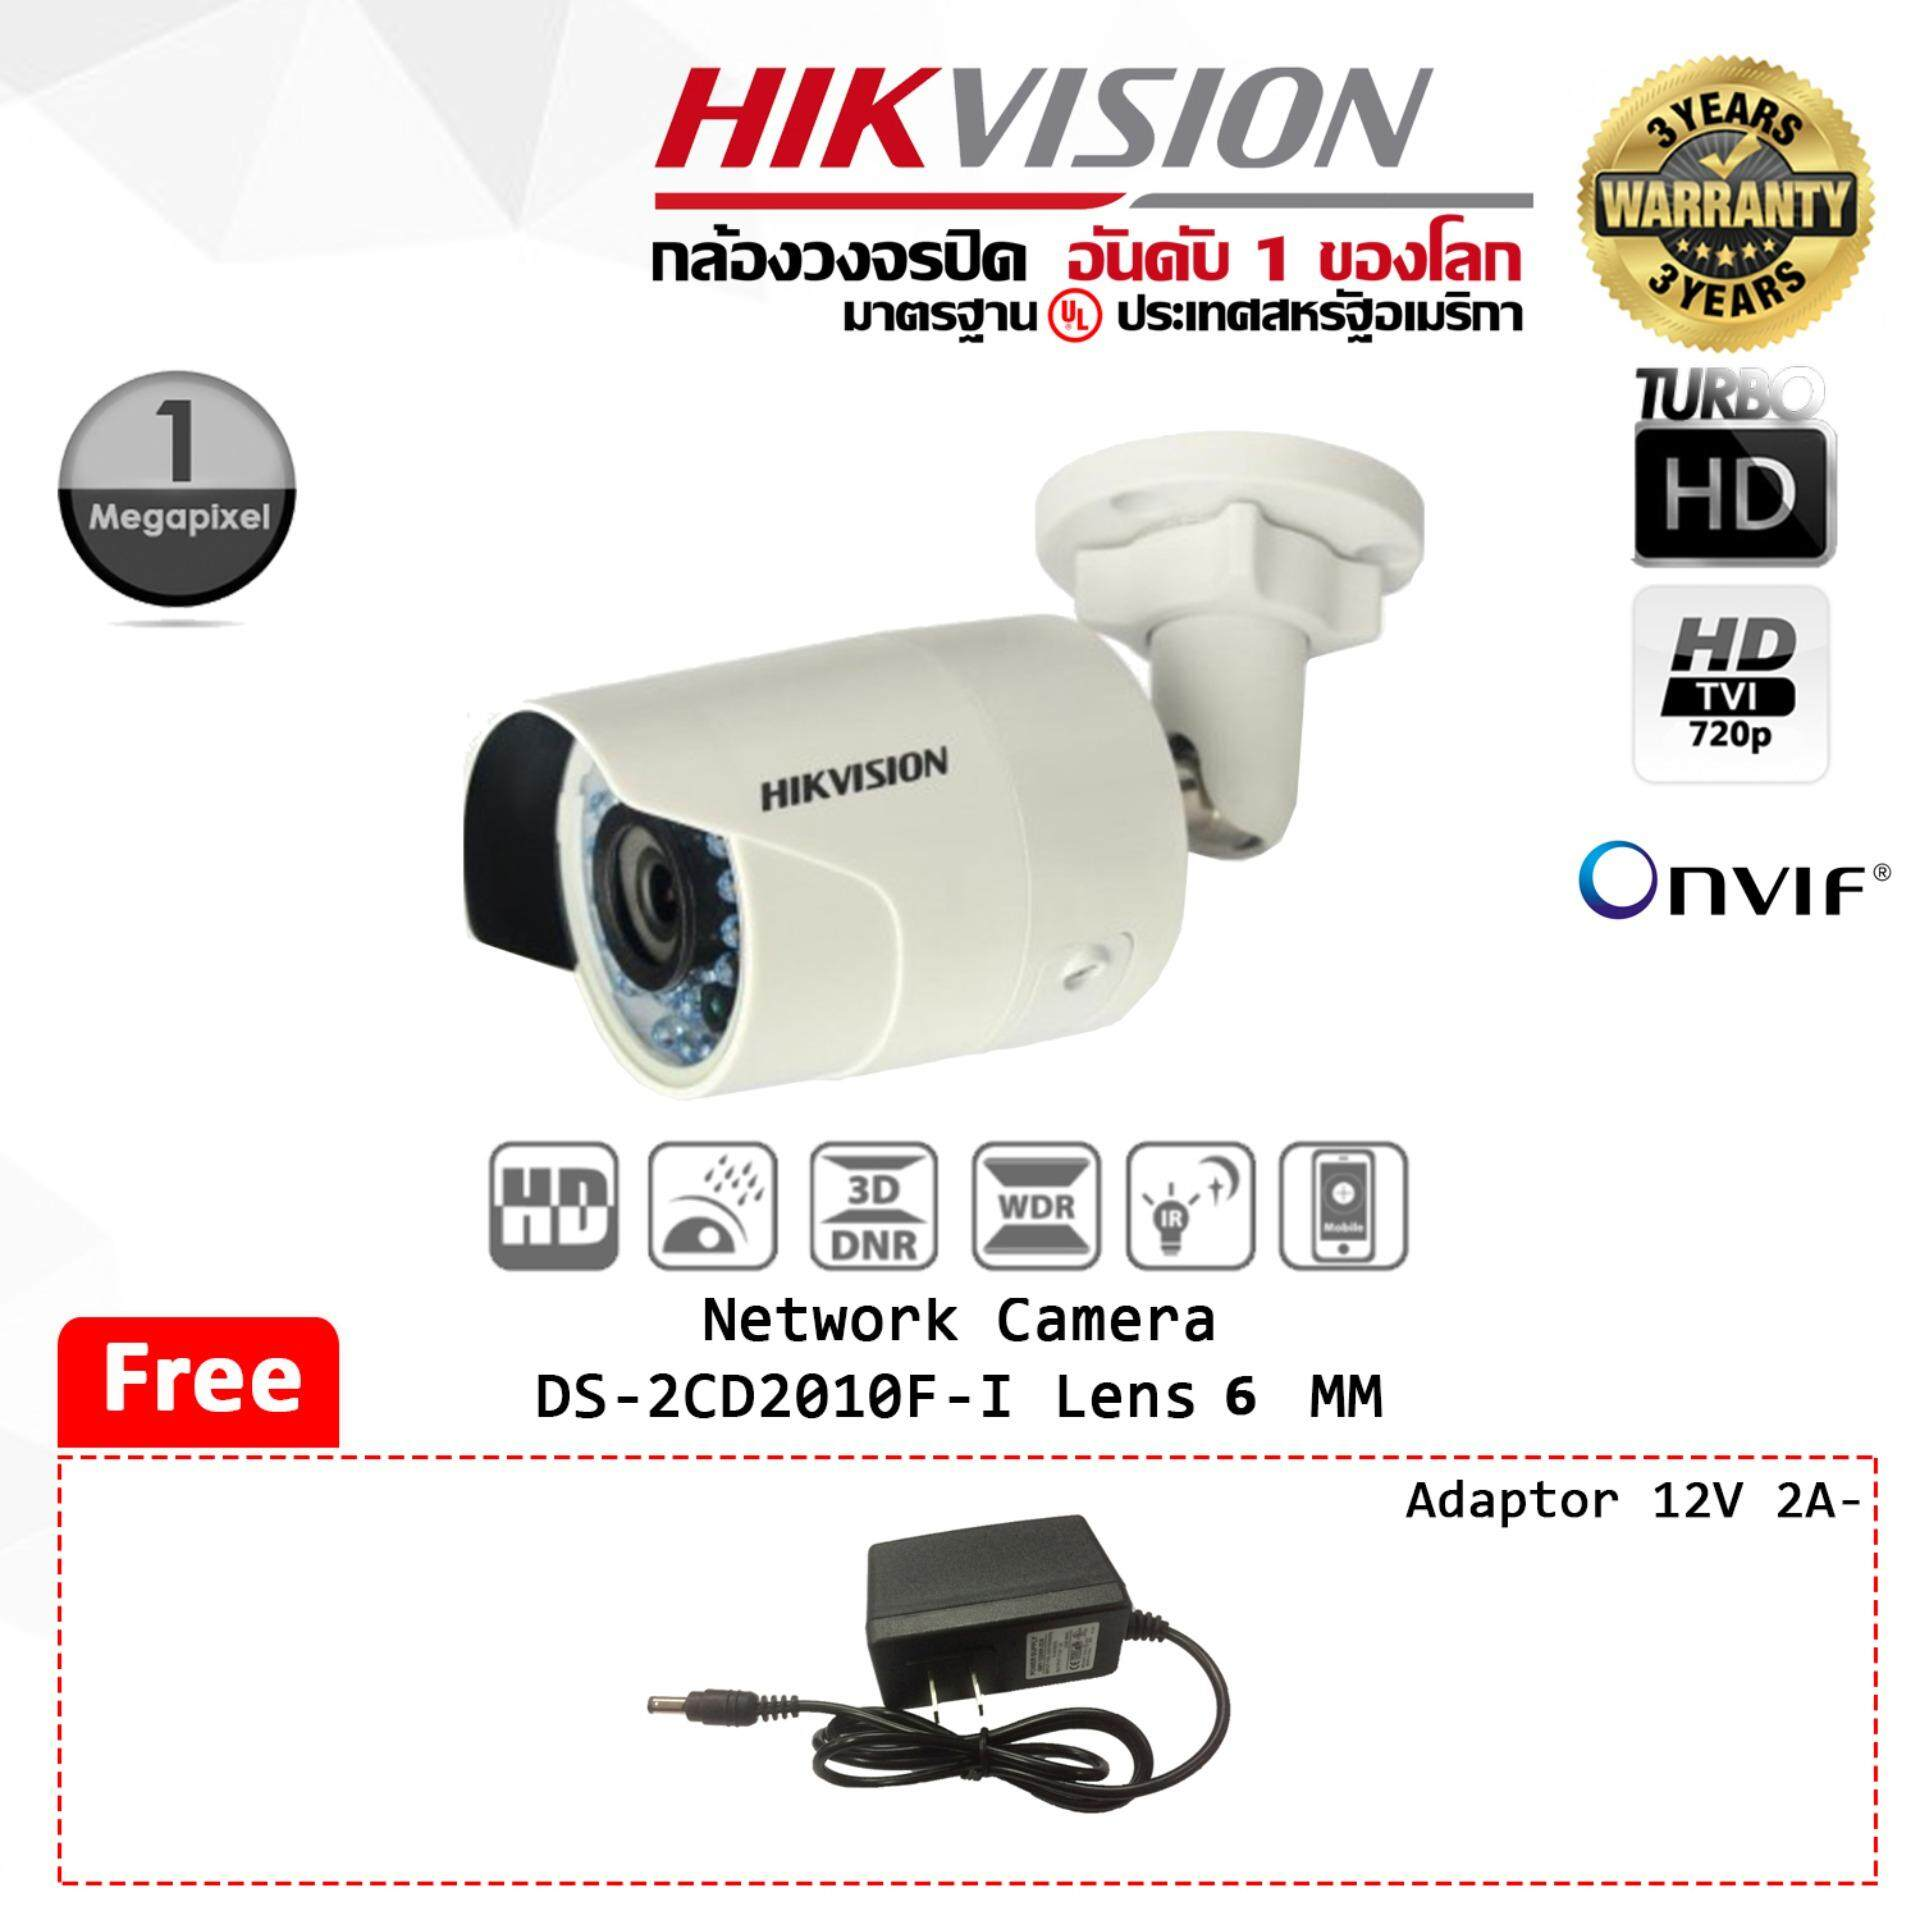 ราคา กล้องวงจรปิด Hikvision Network Camera Ds 2Cd2010F I 1 3 Mp Ir Mini Bullet Camera Lens 6 Mm Ip ฟรี Adaptor 12V 2A Kenpro ไทย